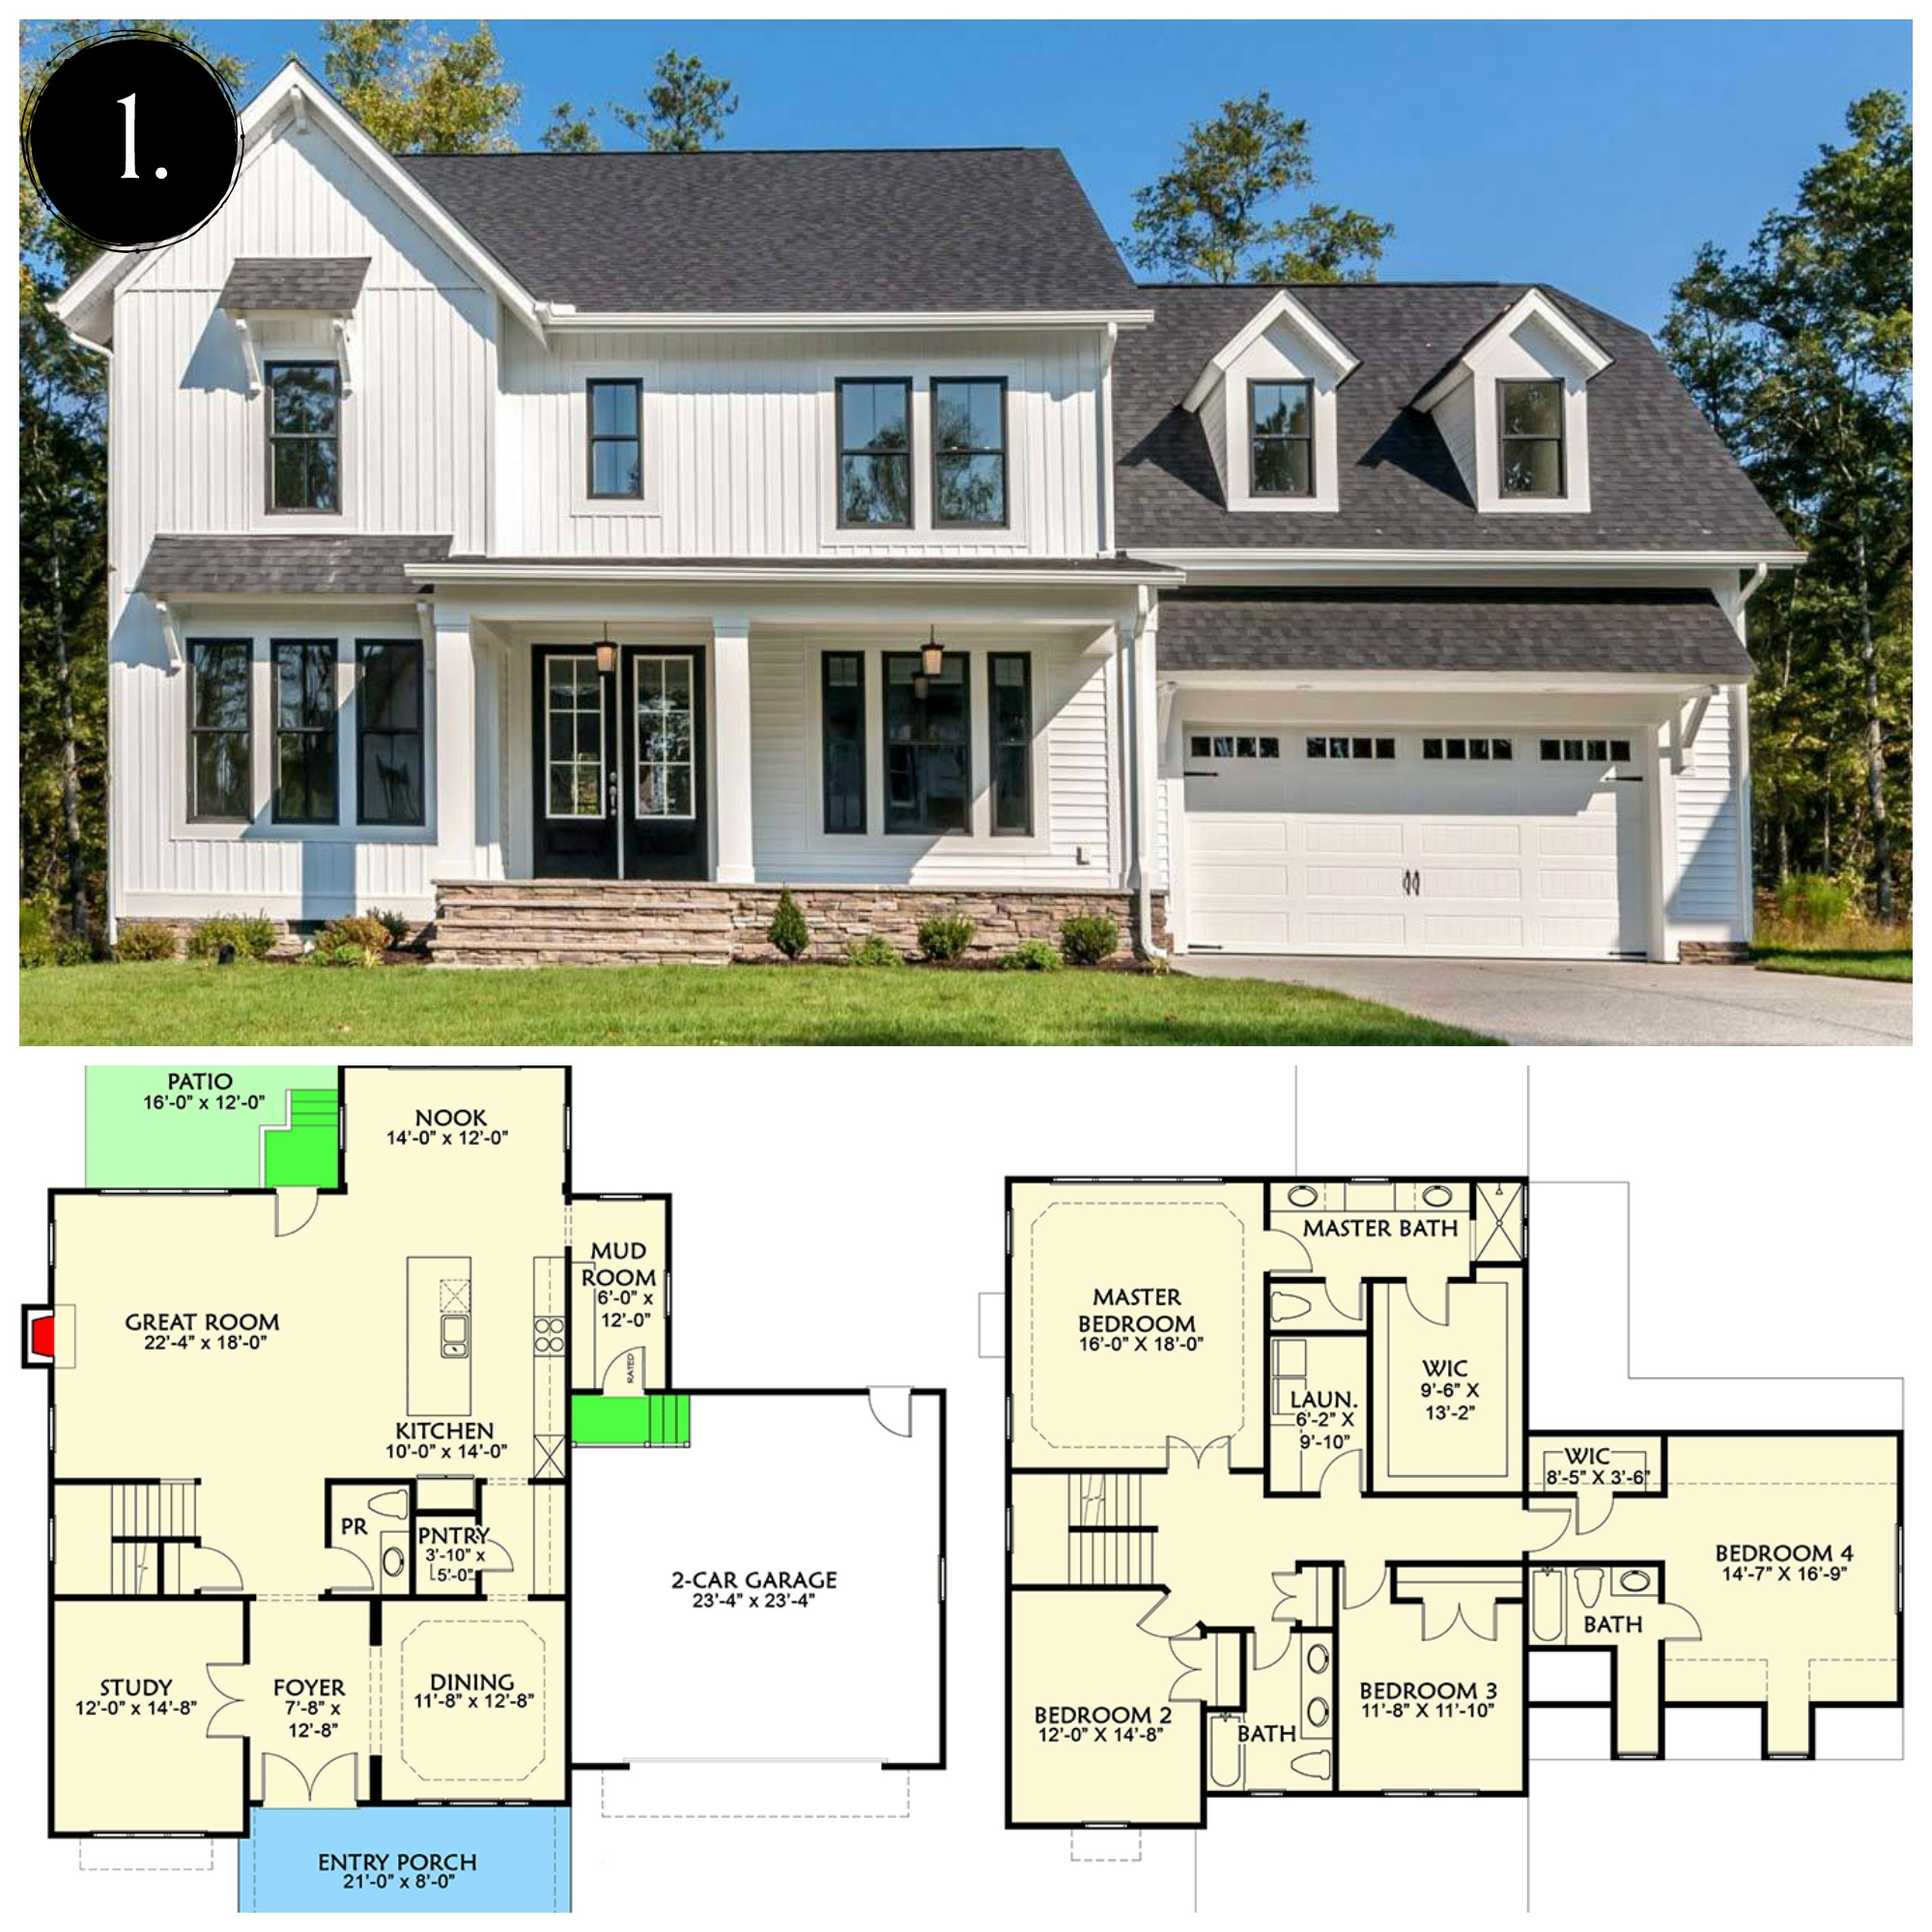 12 Modern Farmhouse Floor Plans | Rooms FOR Rent Blog ... on